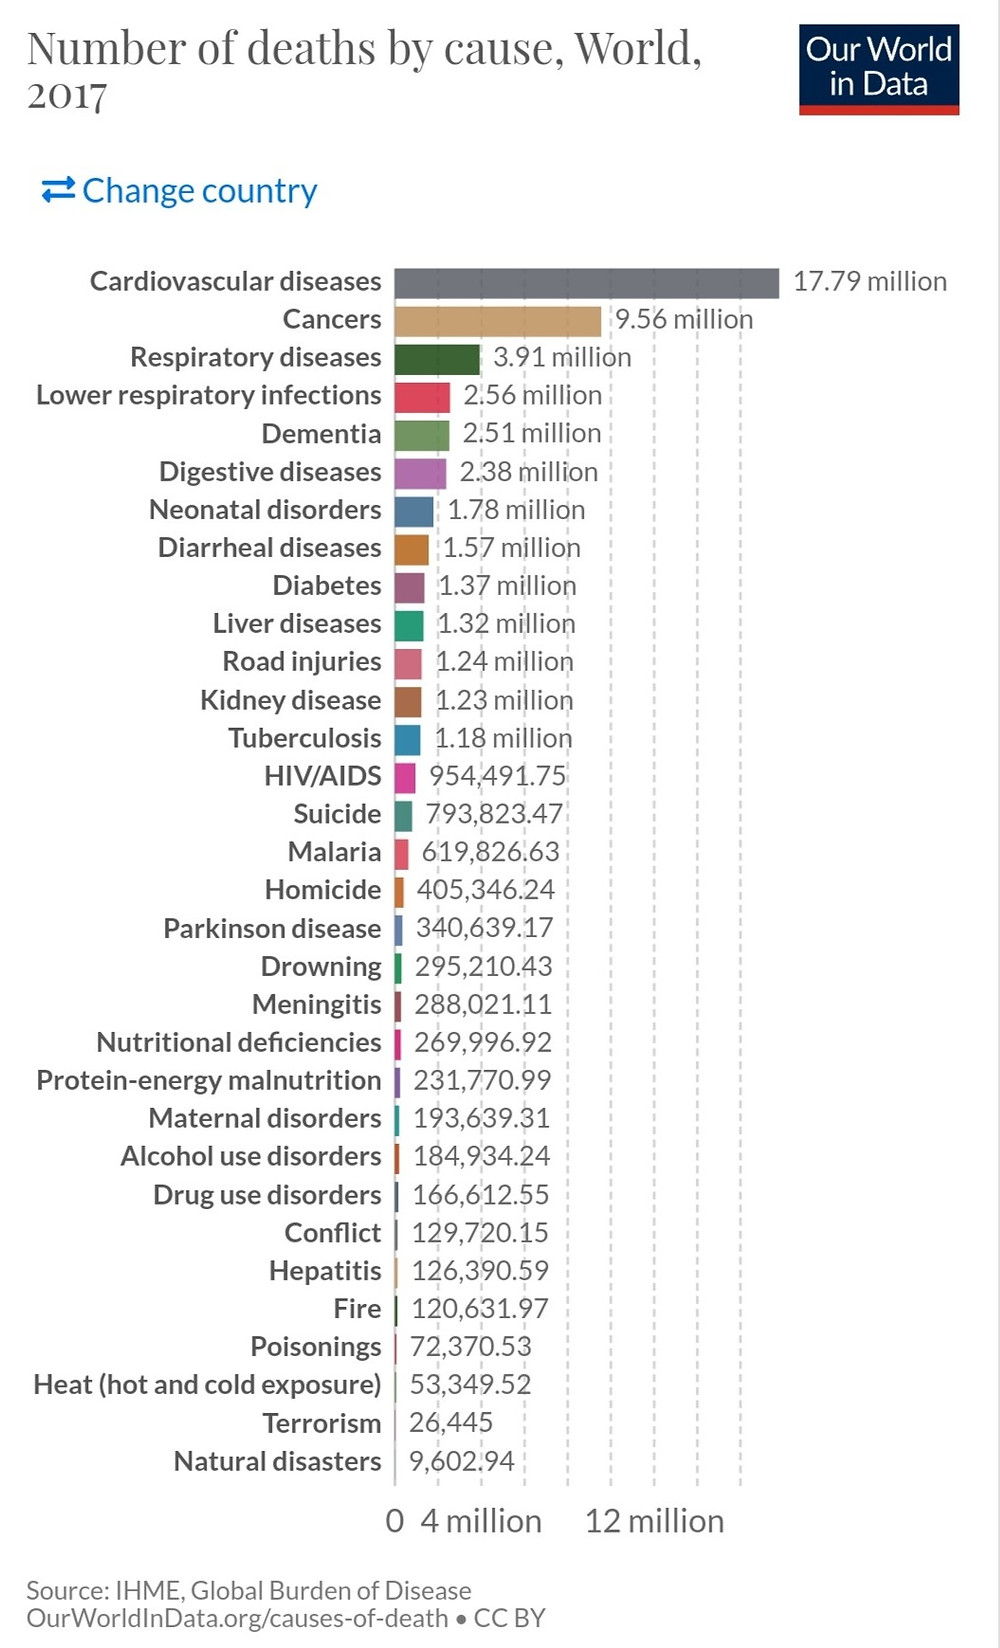 Deaths due to NCDs in 2017 worldwide